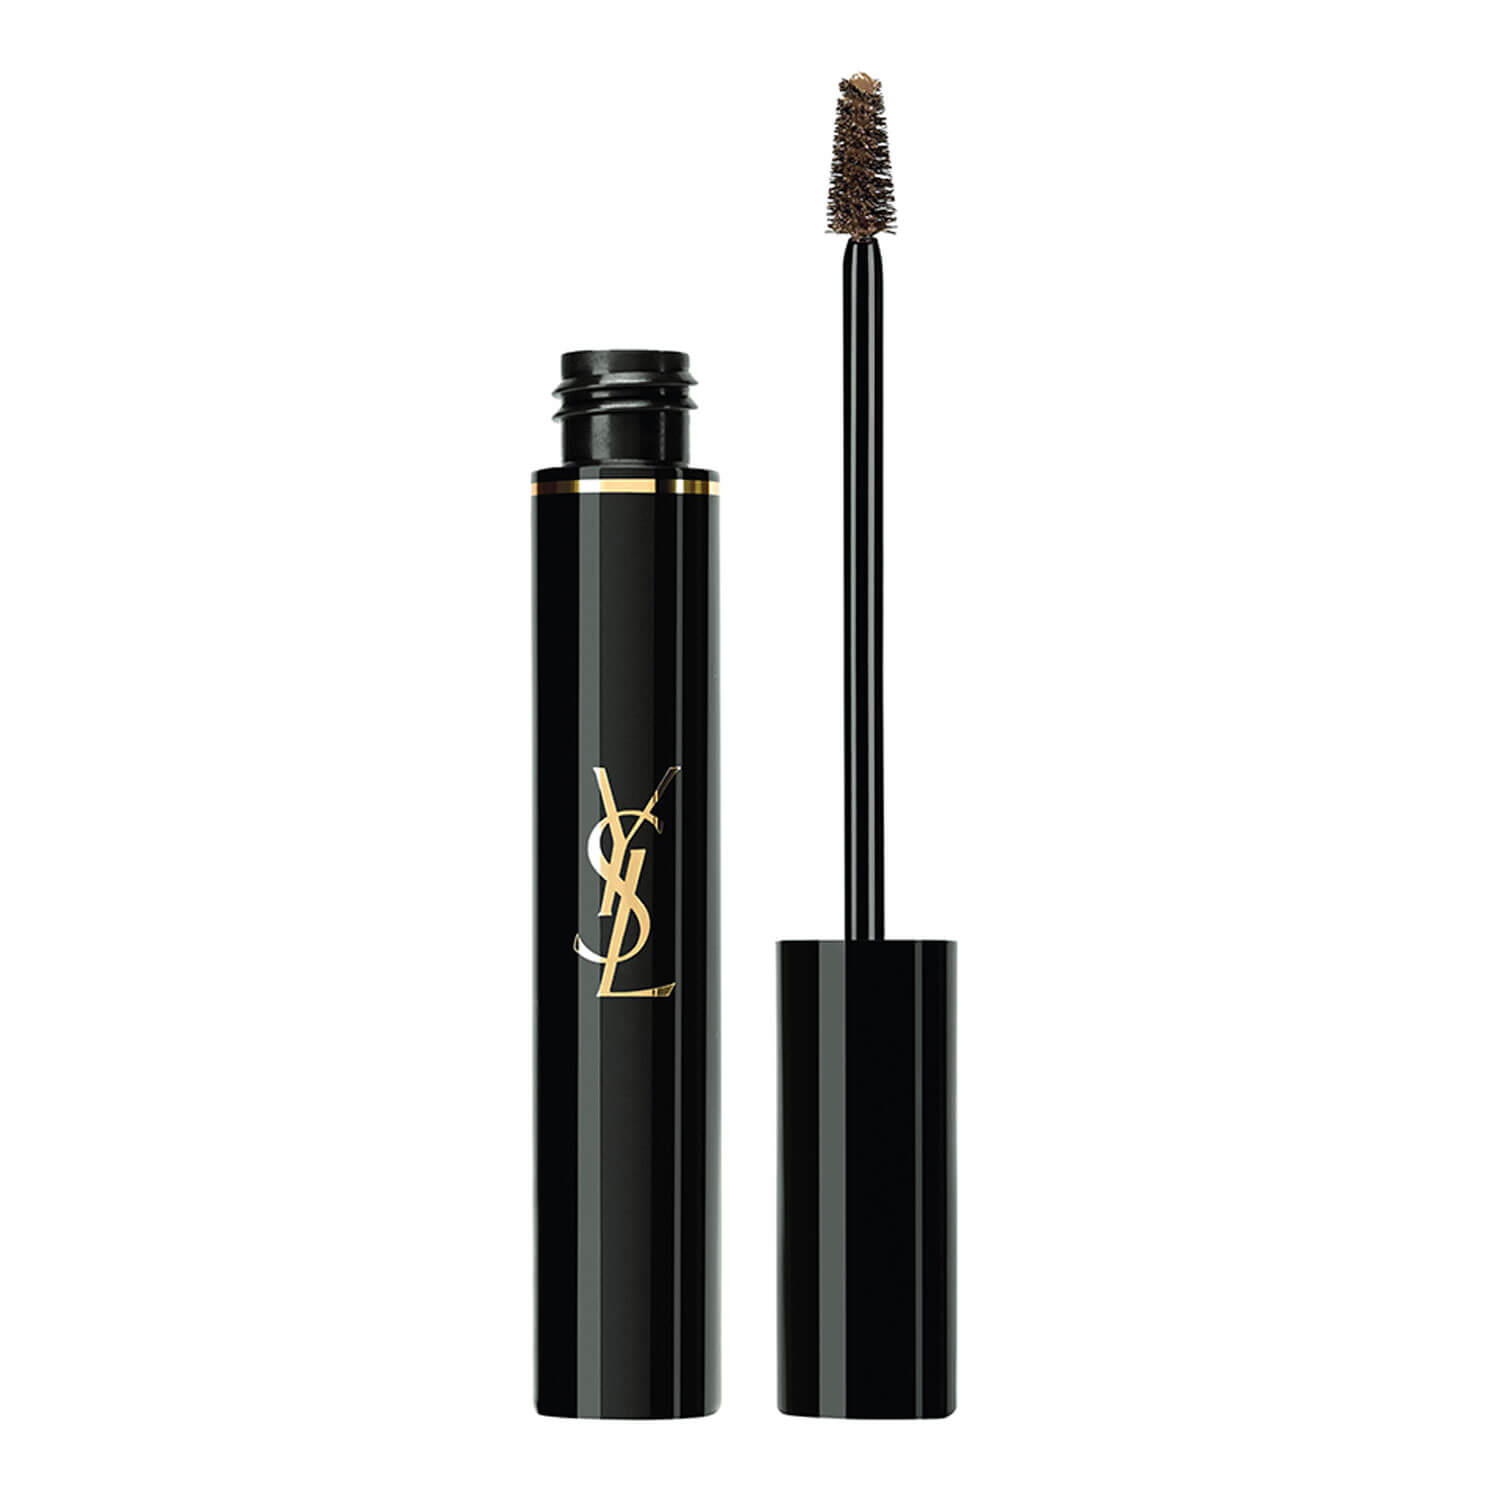 Couture Brow - Blond Cendré 02